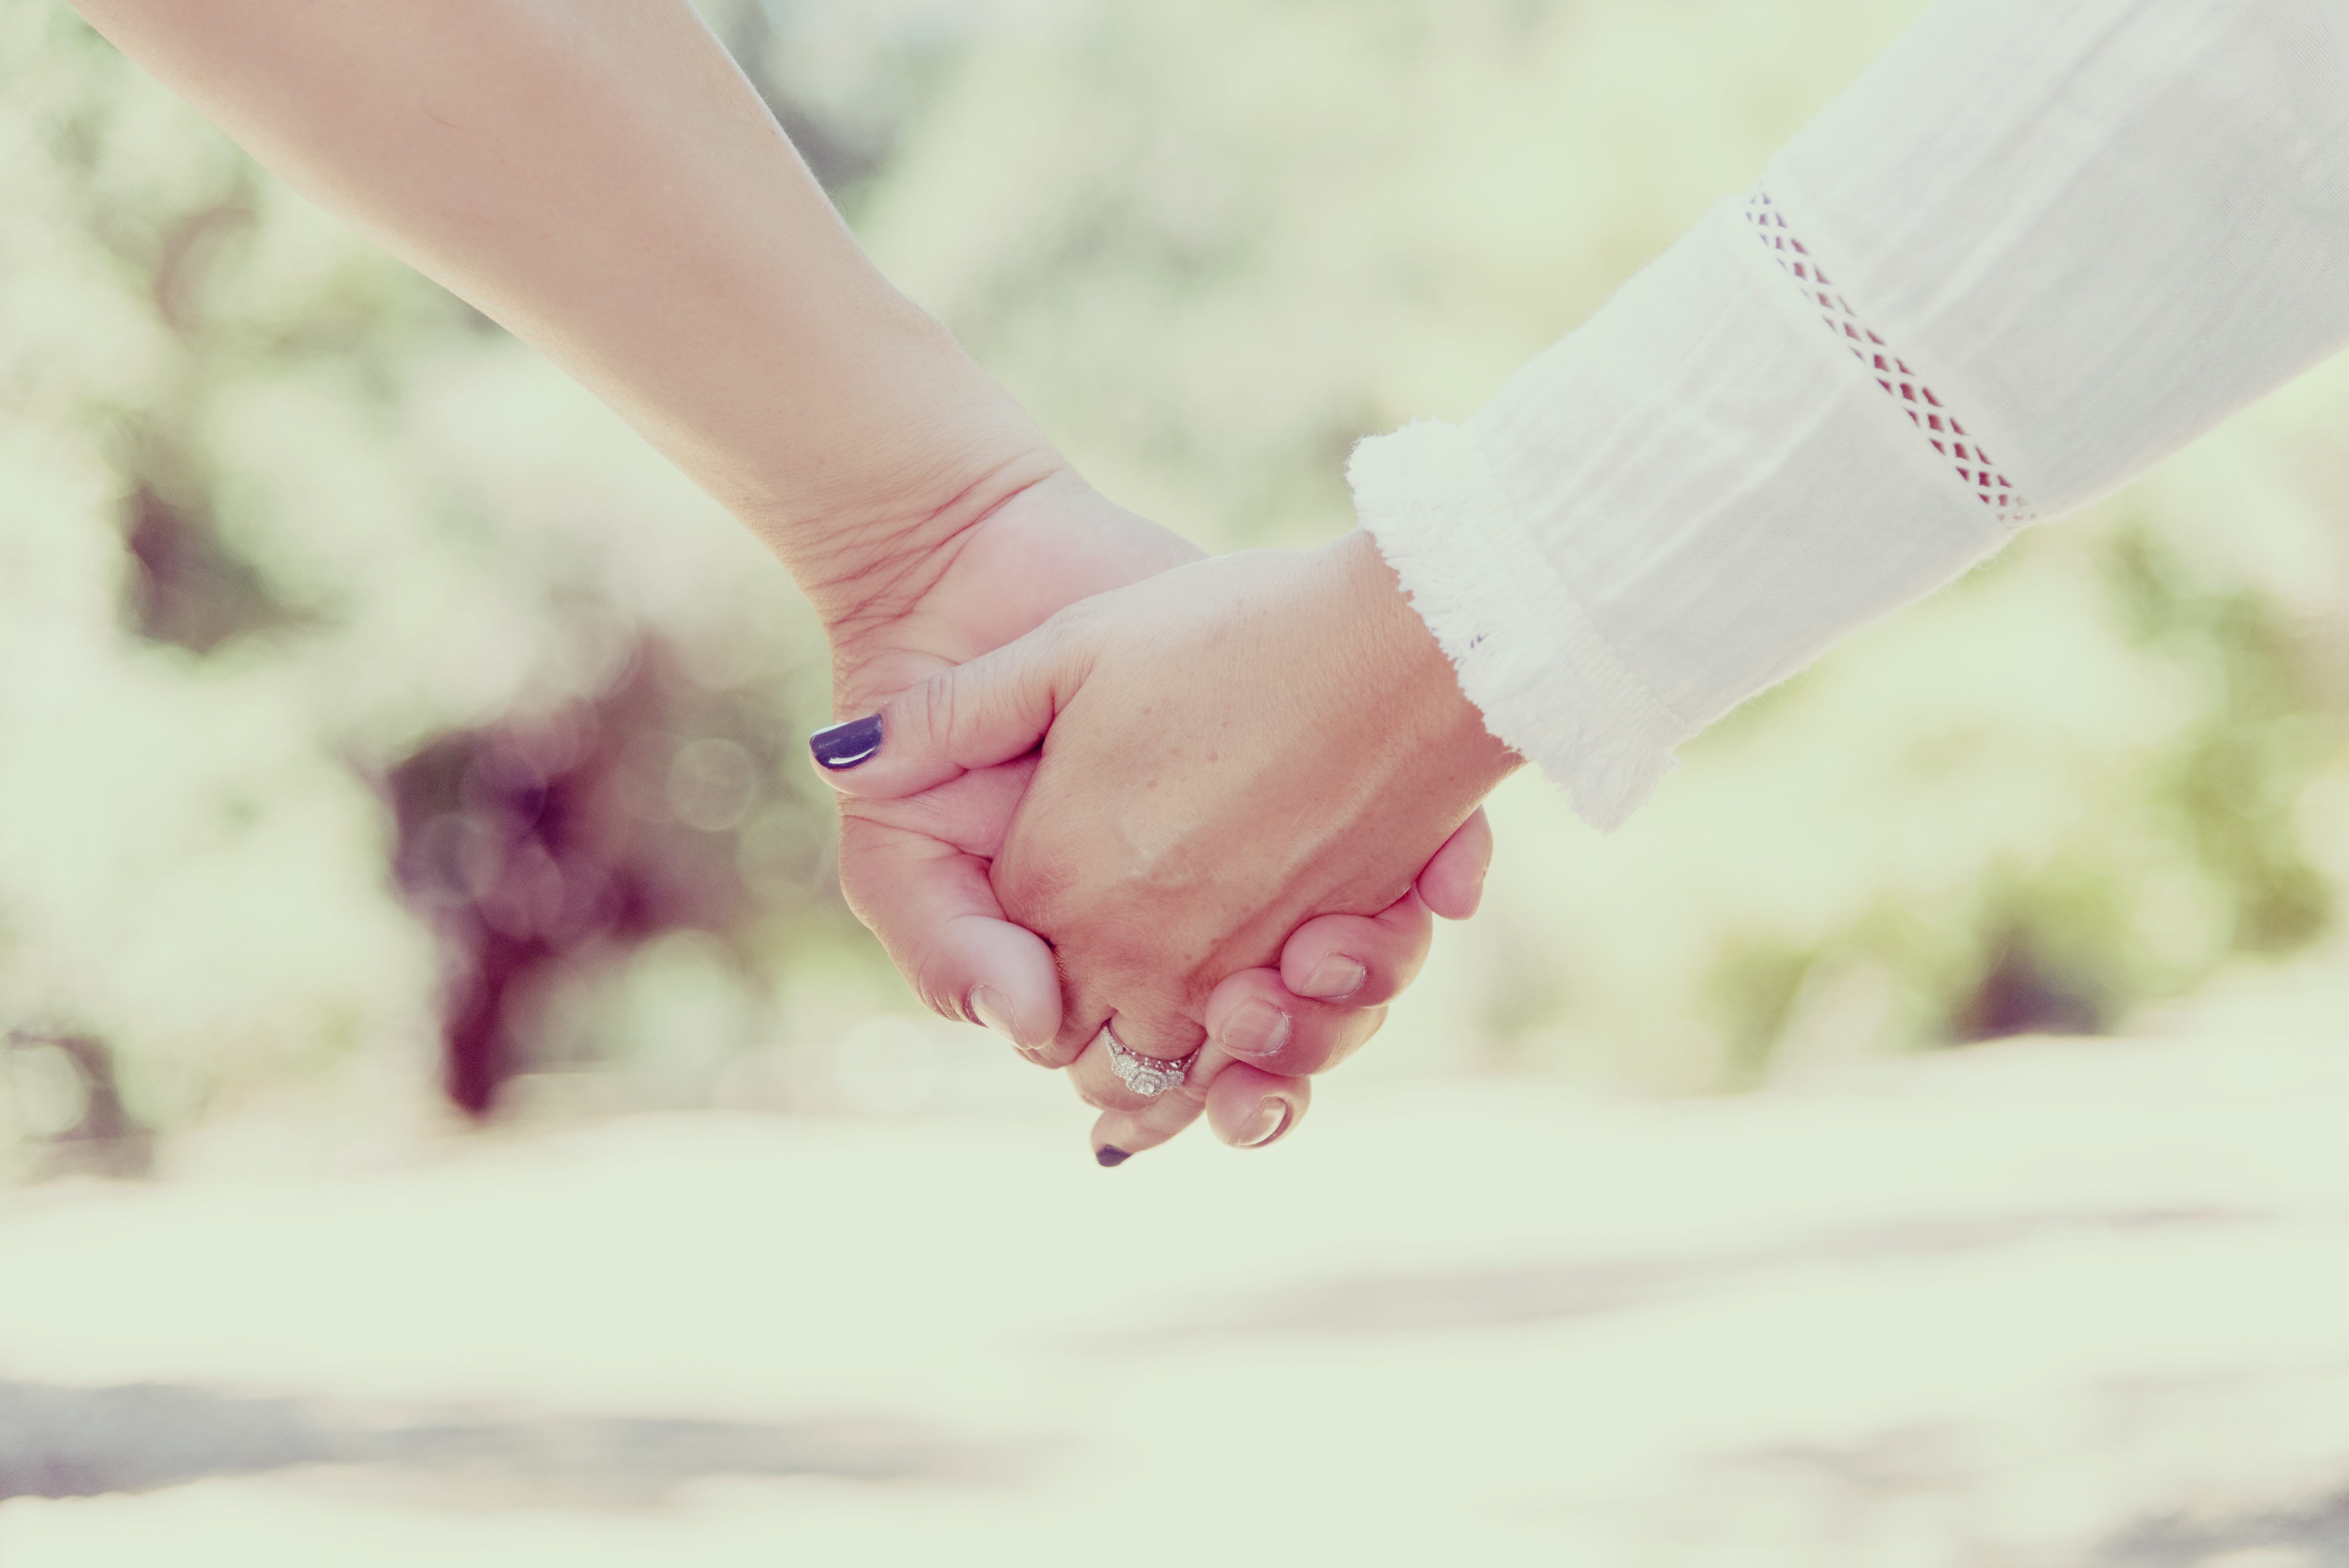 Photo: two people holding hands